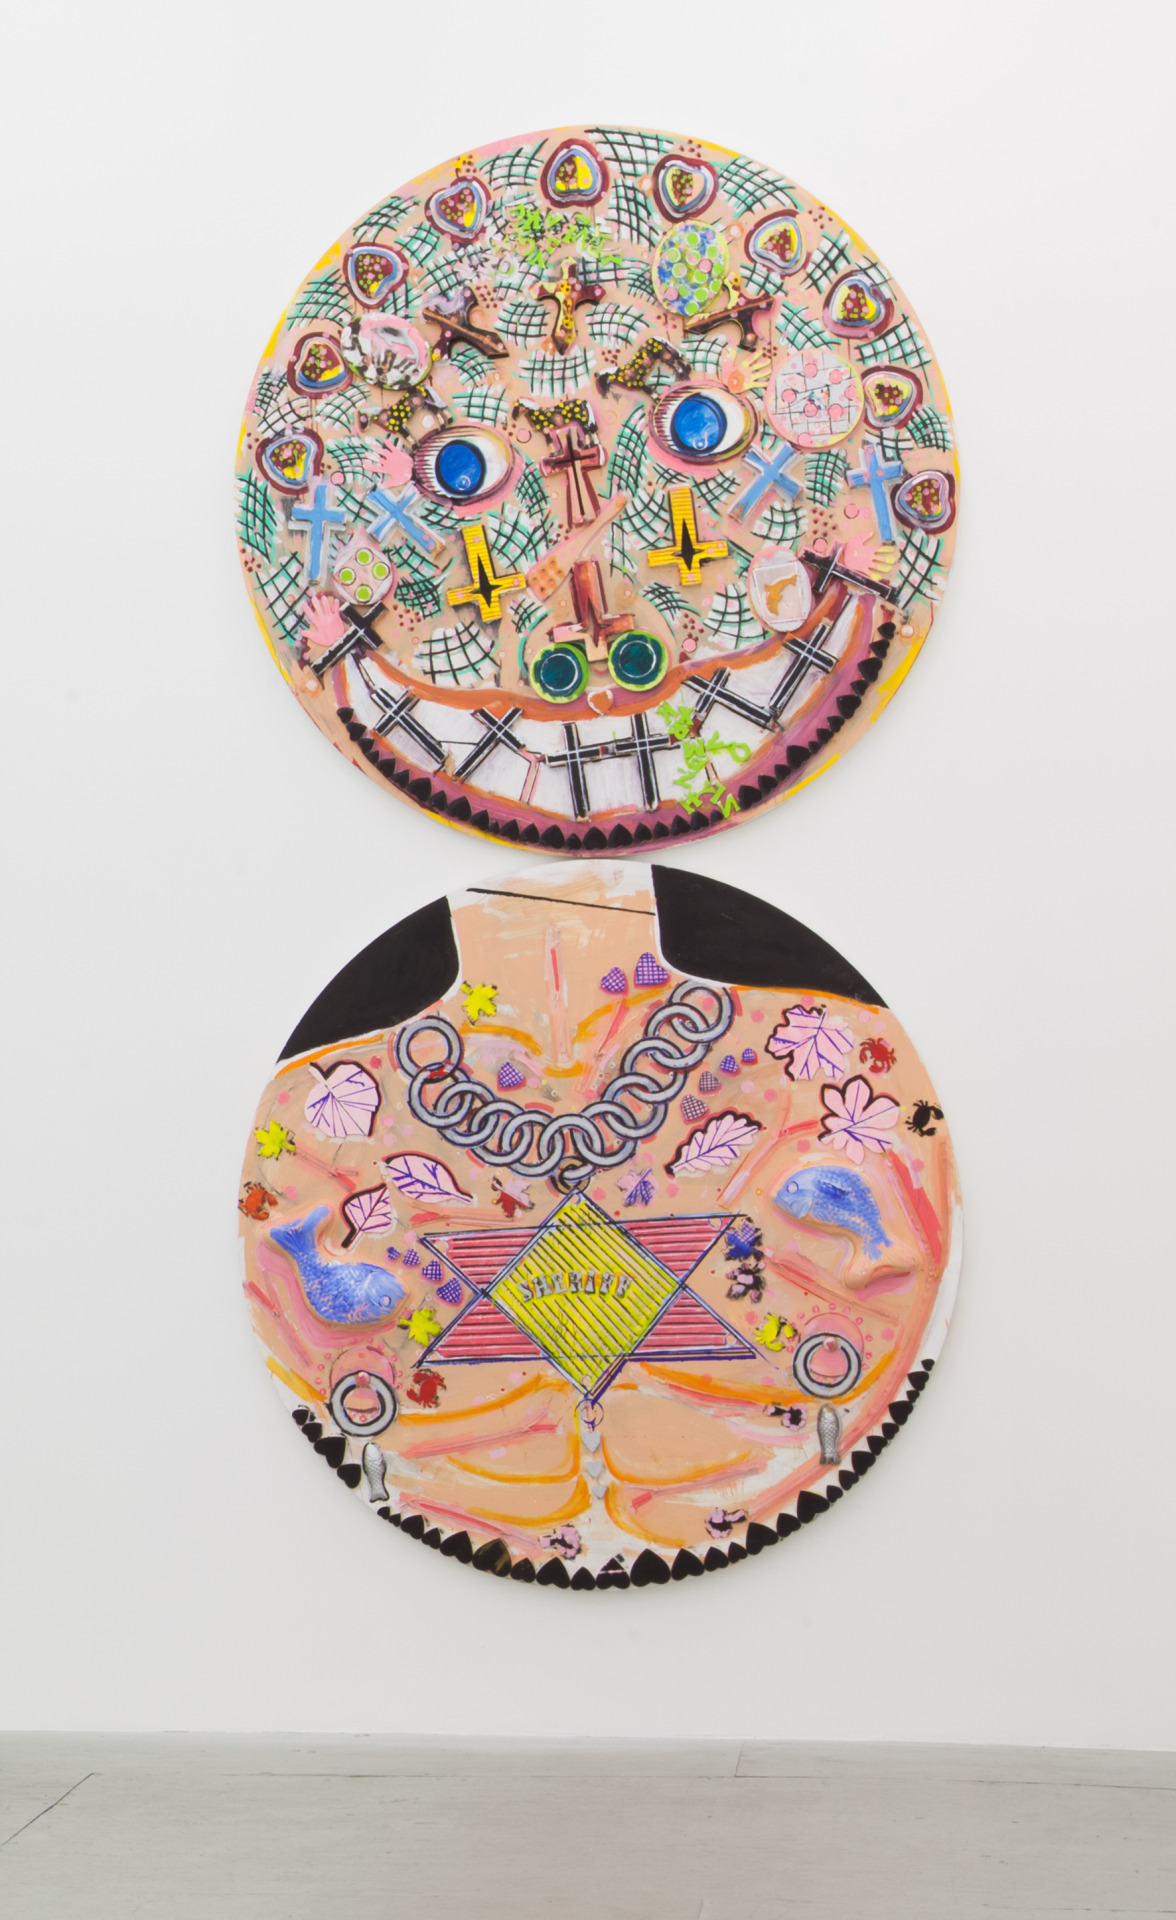 Untitled, 2012, Hal Saulson (Joshua Abelow's Art Blog Art Blog. For Older ABAB click here)